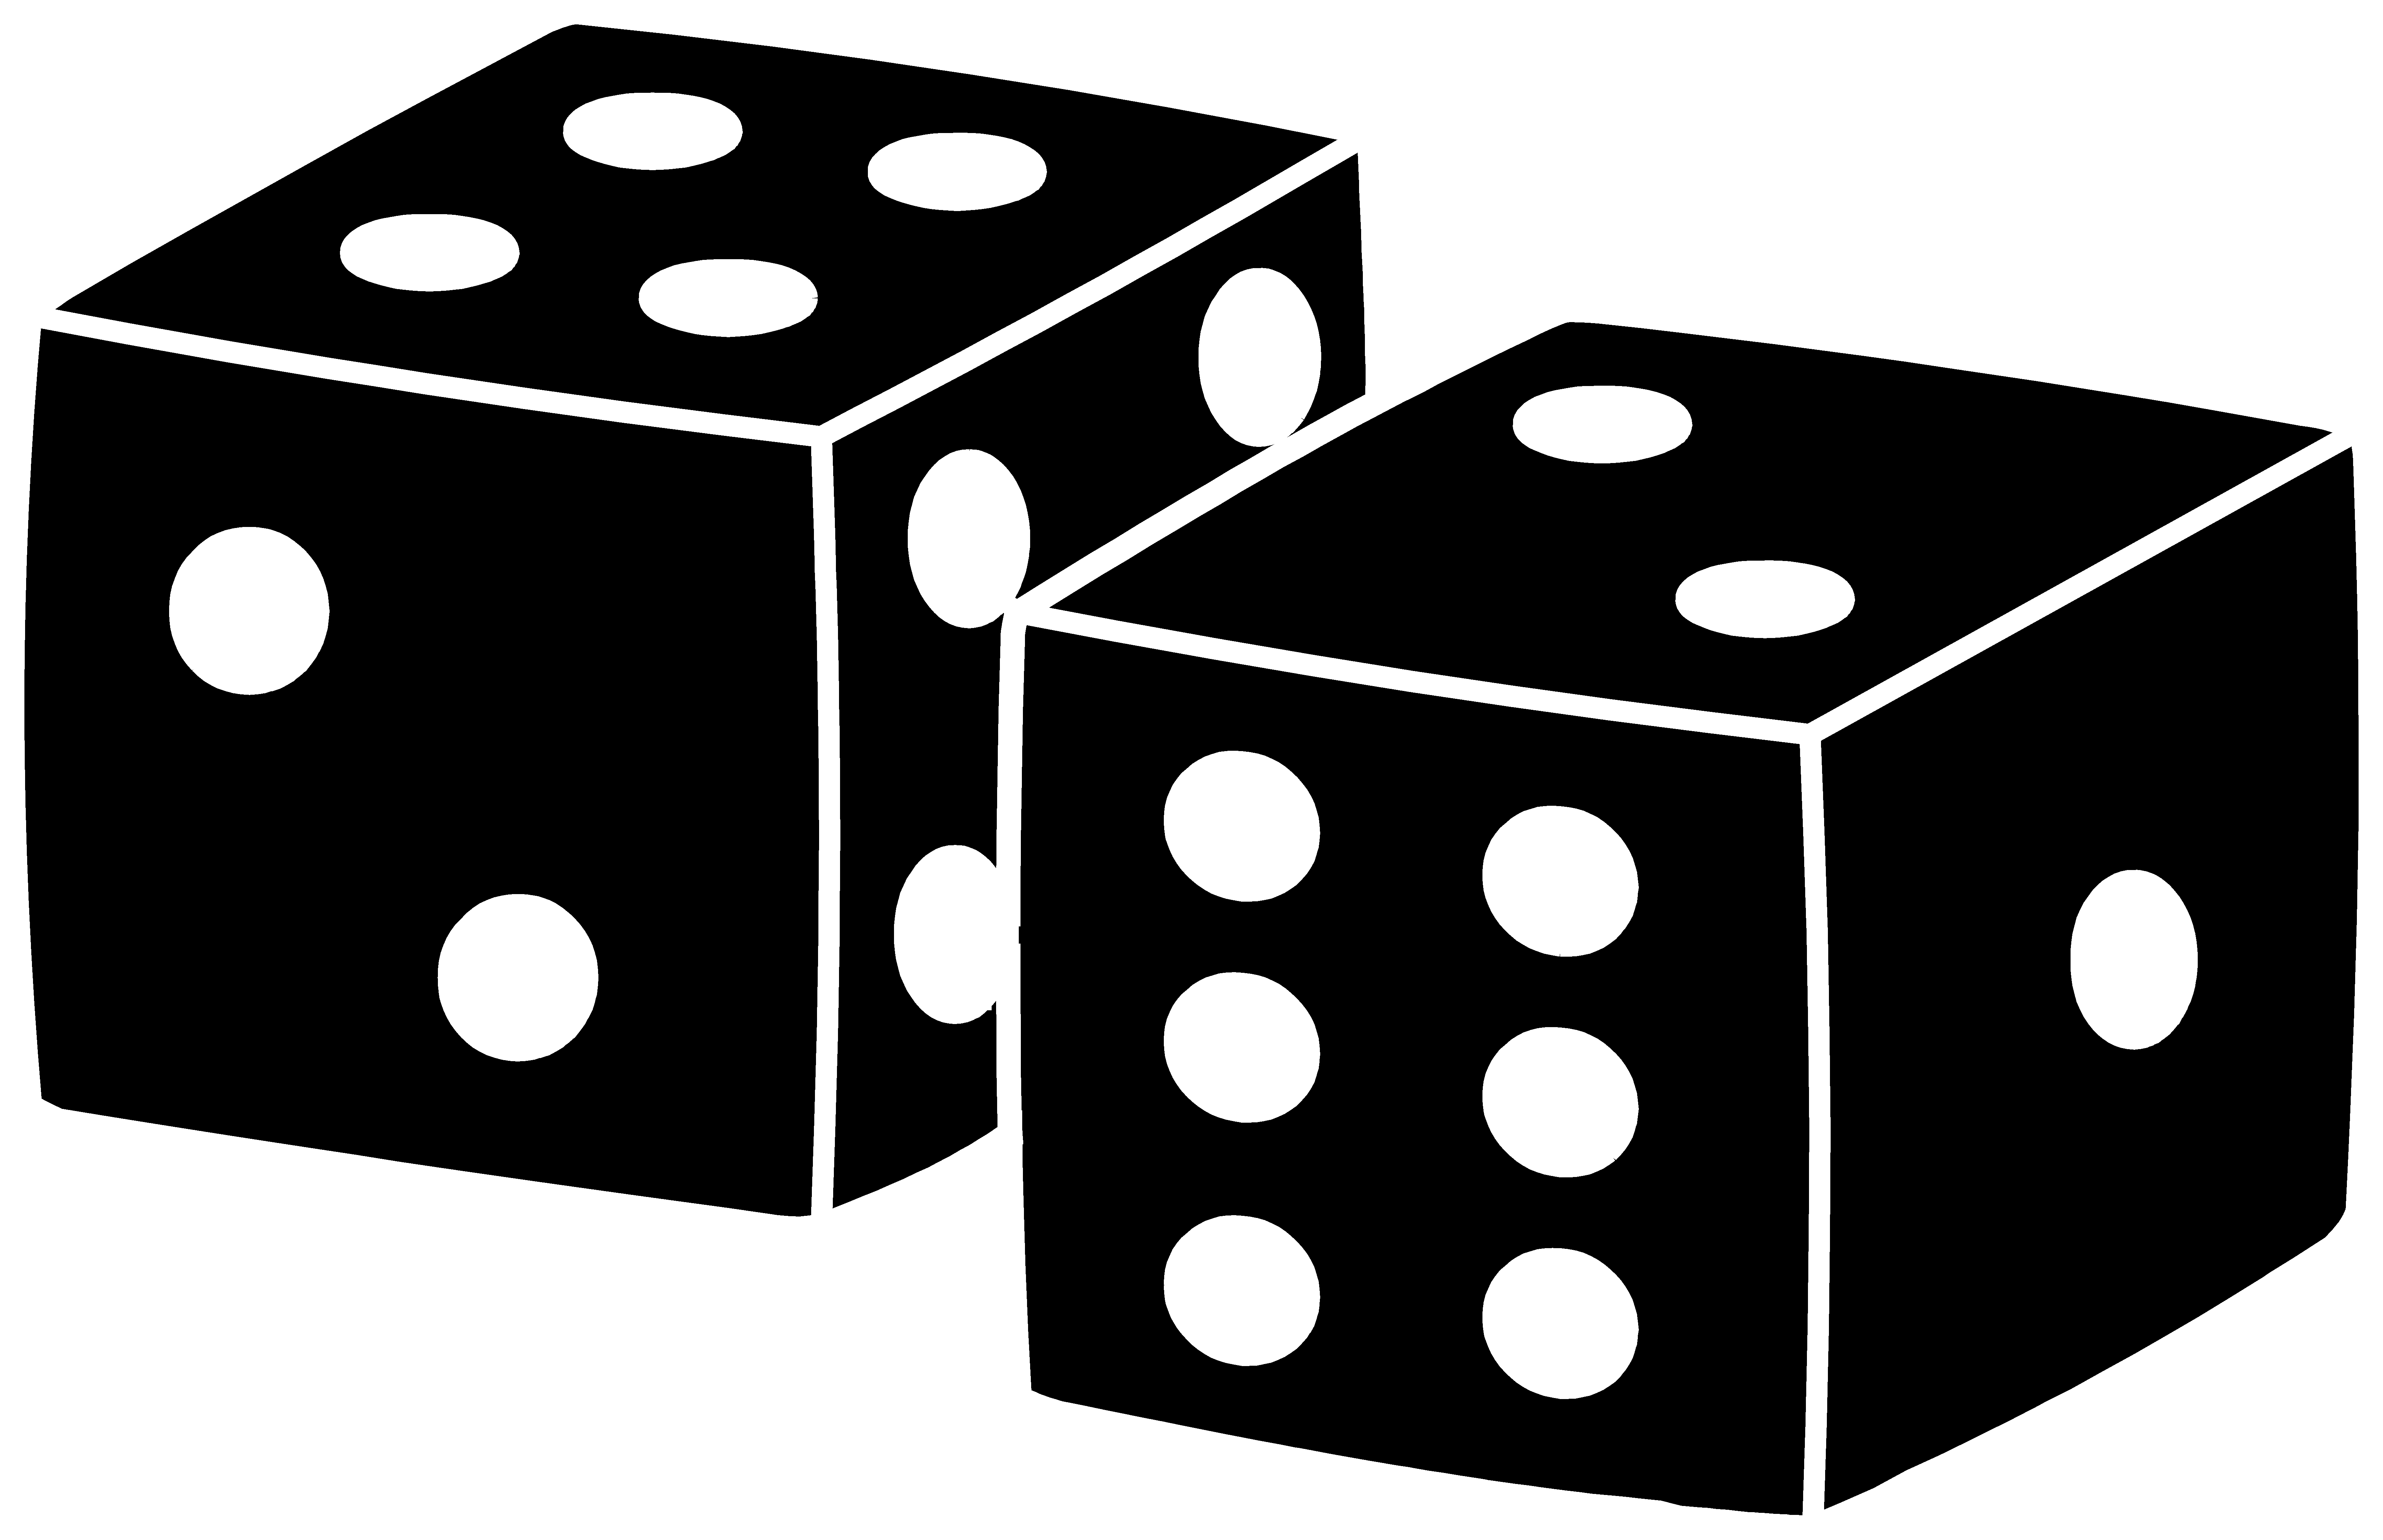 clipart free download Dice clipart. Black and white fototo